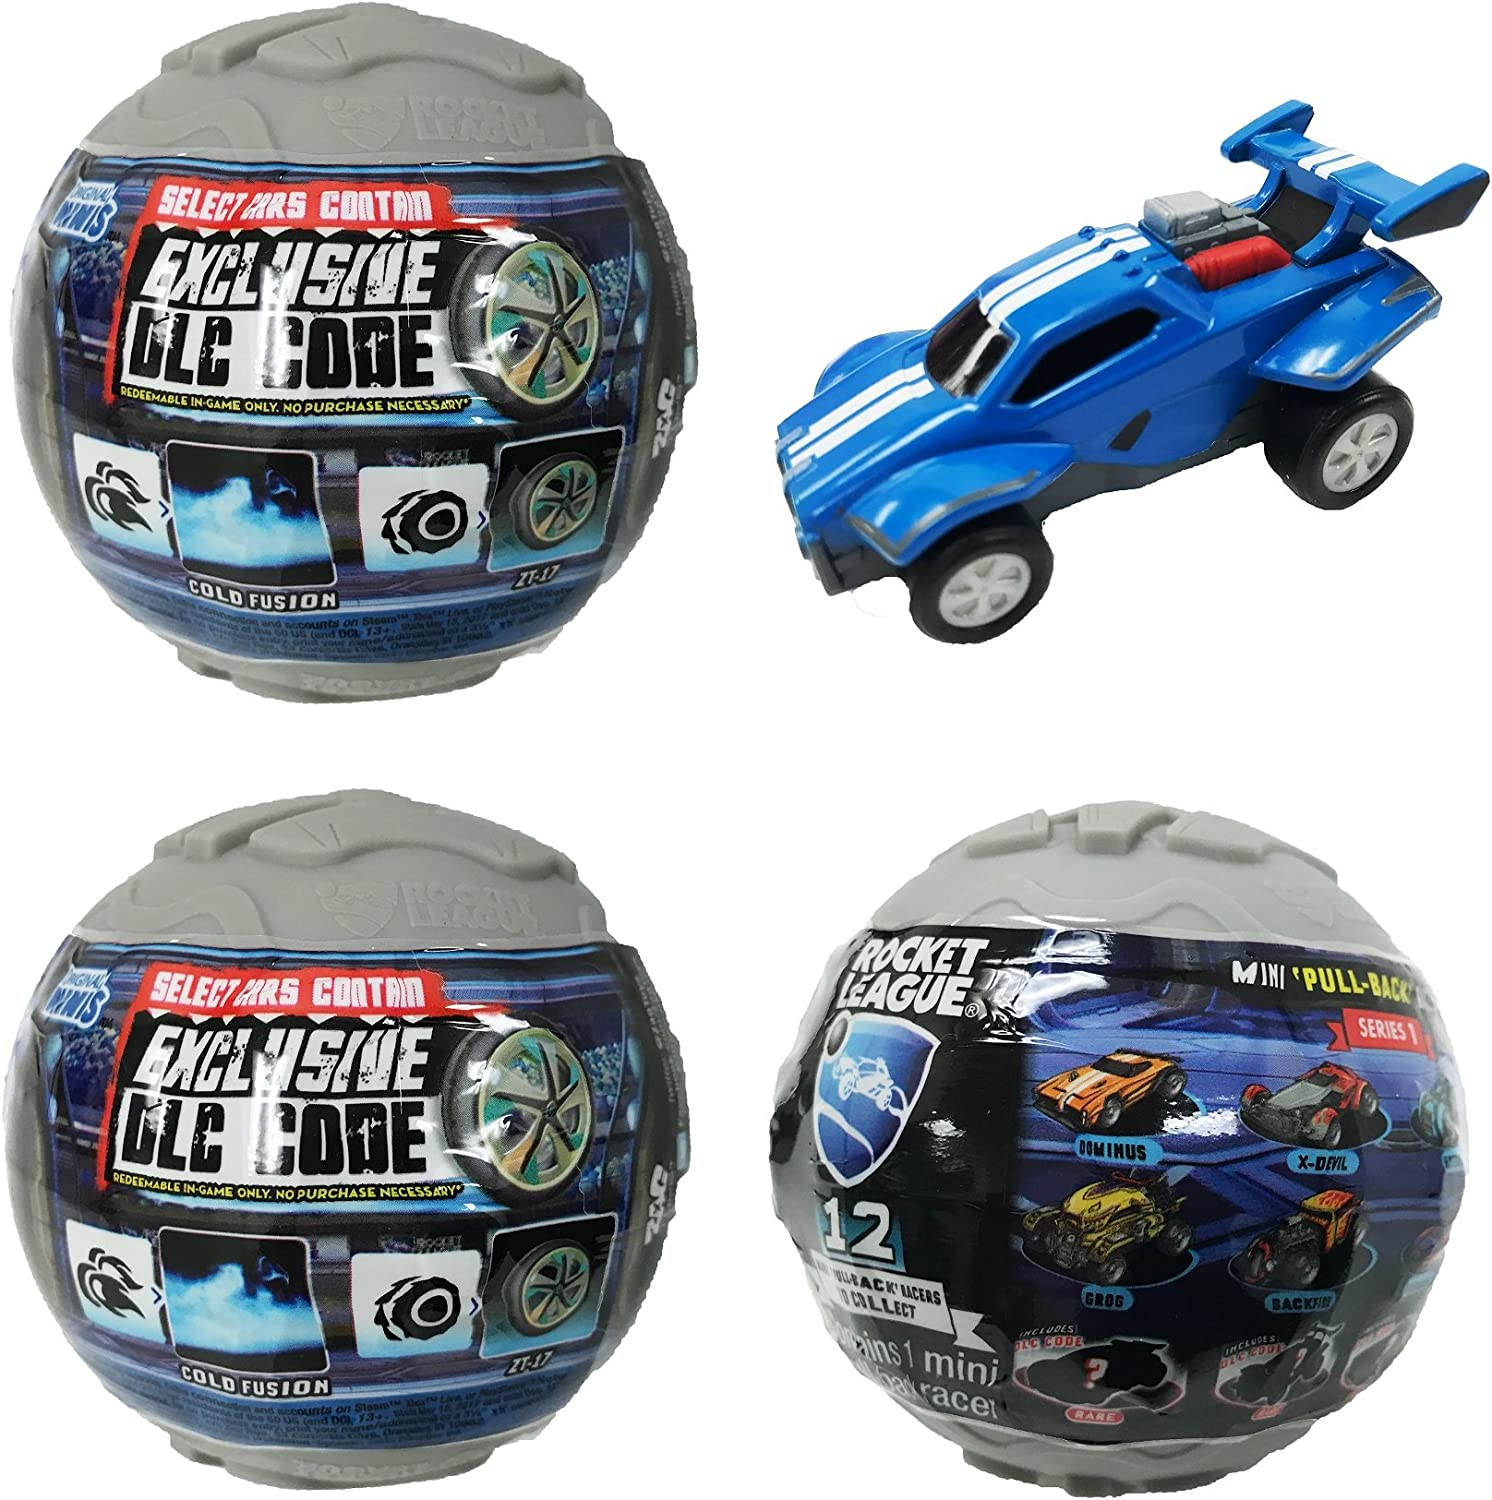 Amazon Com Rocket League Mini Pull Back Racer Car Mystery Ball Set Of 3 With Possible Dlc Code Toys Games